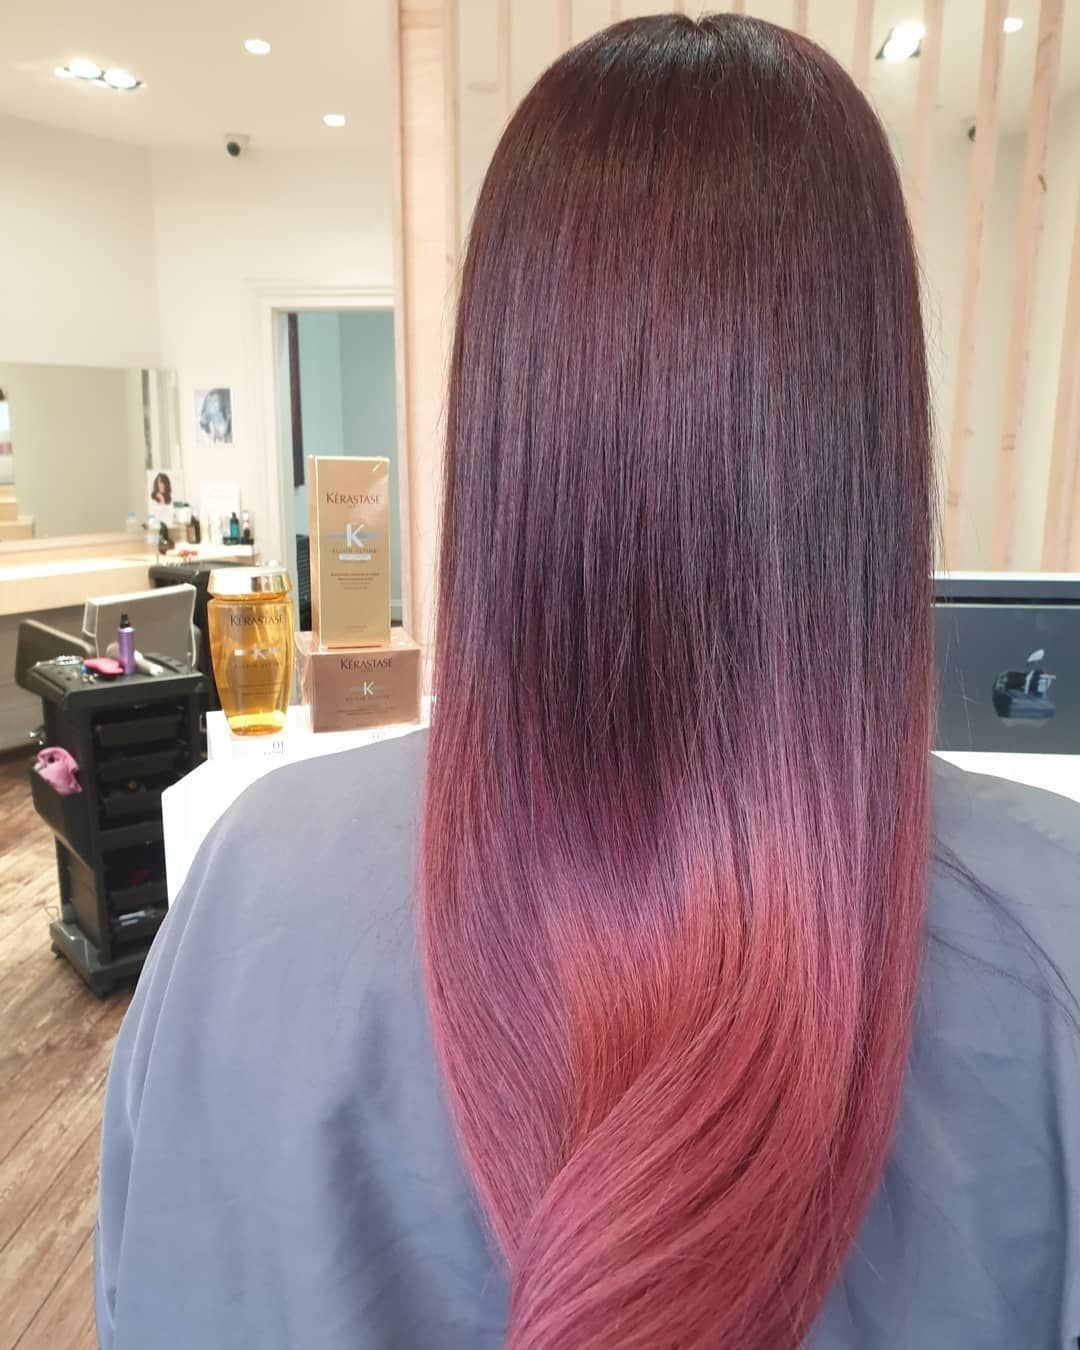 Joseph S Hair Salon On Instagram Perfection Colour Done By Helena Pink Ombre On Top Hairstyles Hairlo In 2020 Kerastase Hair Hair Styles Hair Treatment